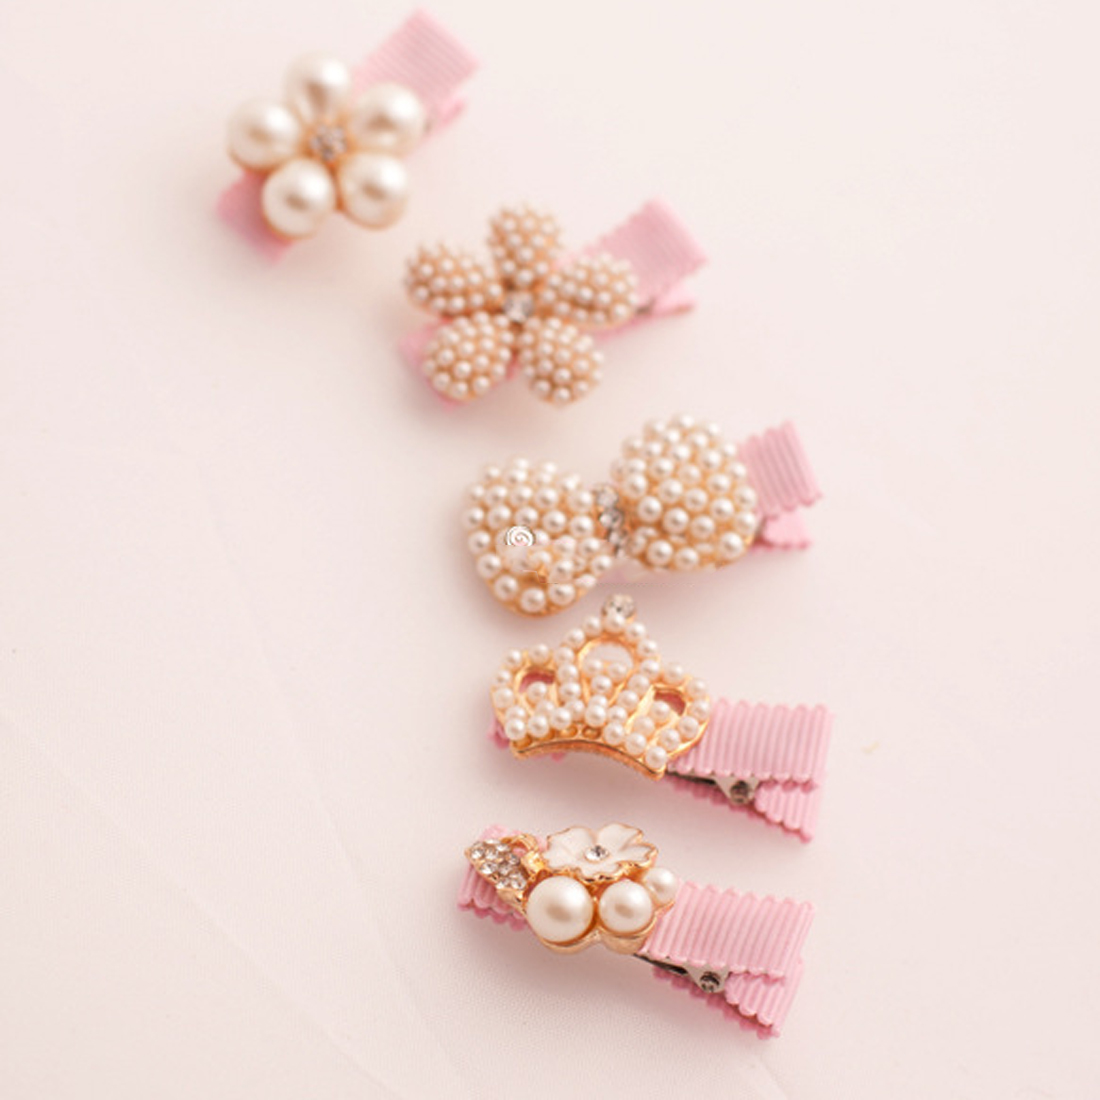 Hair Clips Crown Pearls Hairpins Children Accessory Protect Well Wrapped Bow With Princess